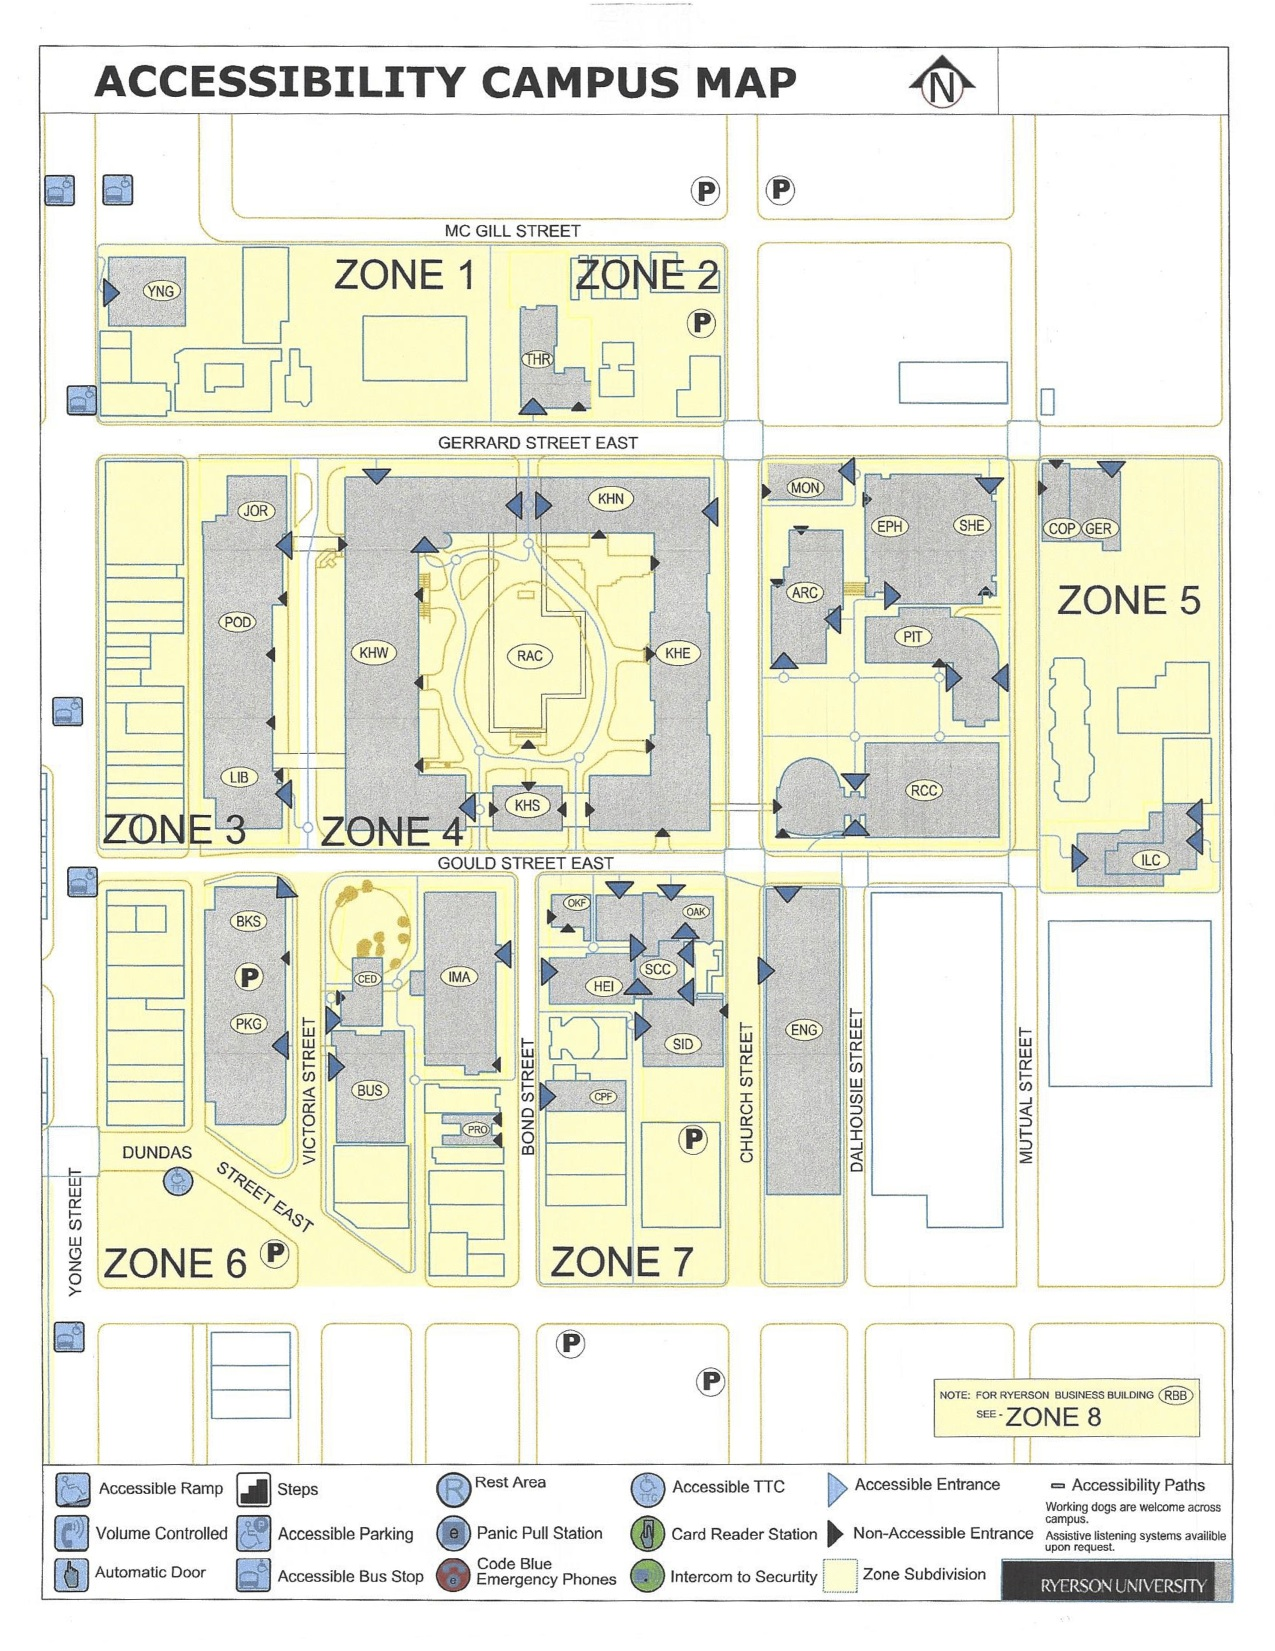 Accessibility map for Ryerson campus